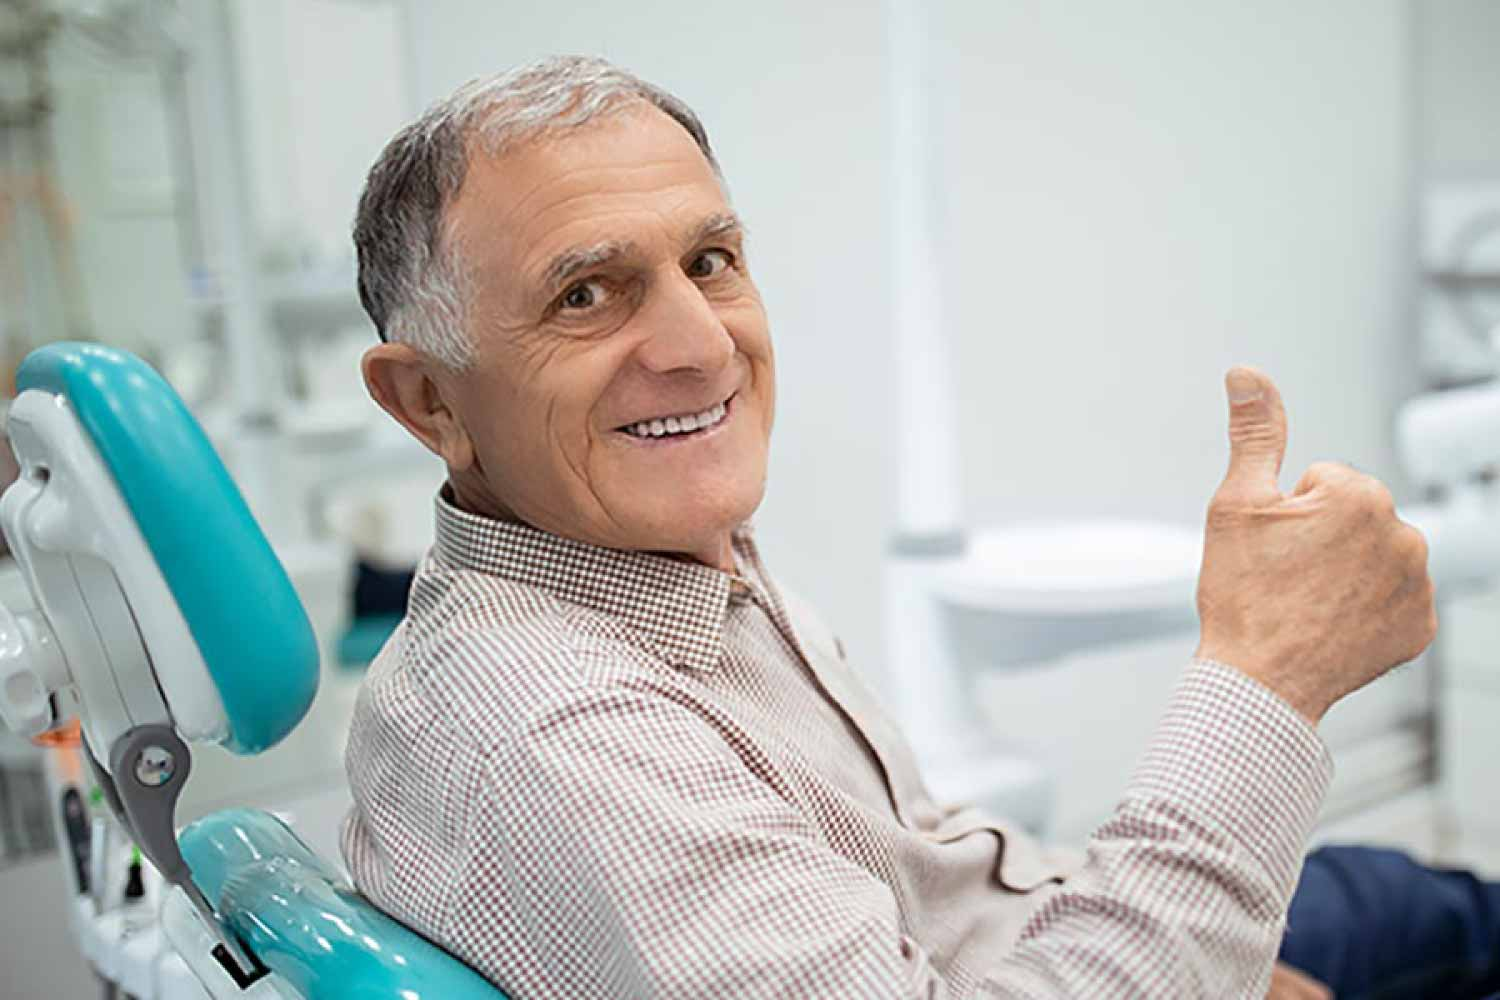 Mature man in the dental chair giving the thumbs up sign.